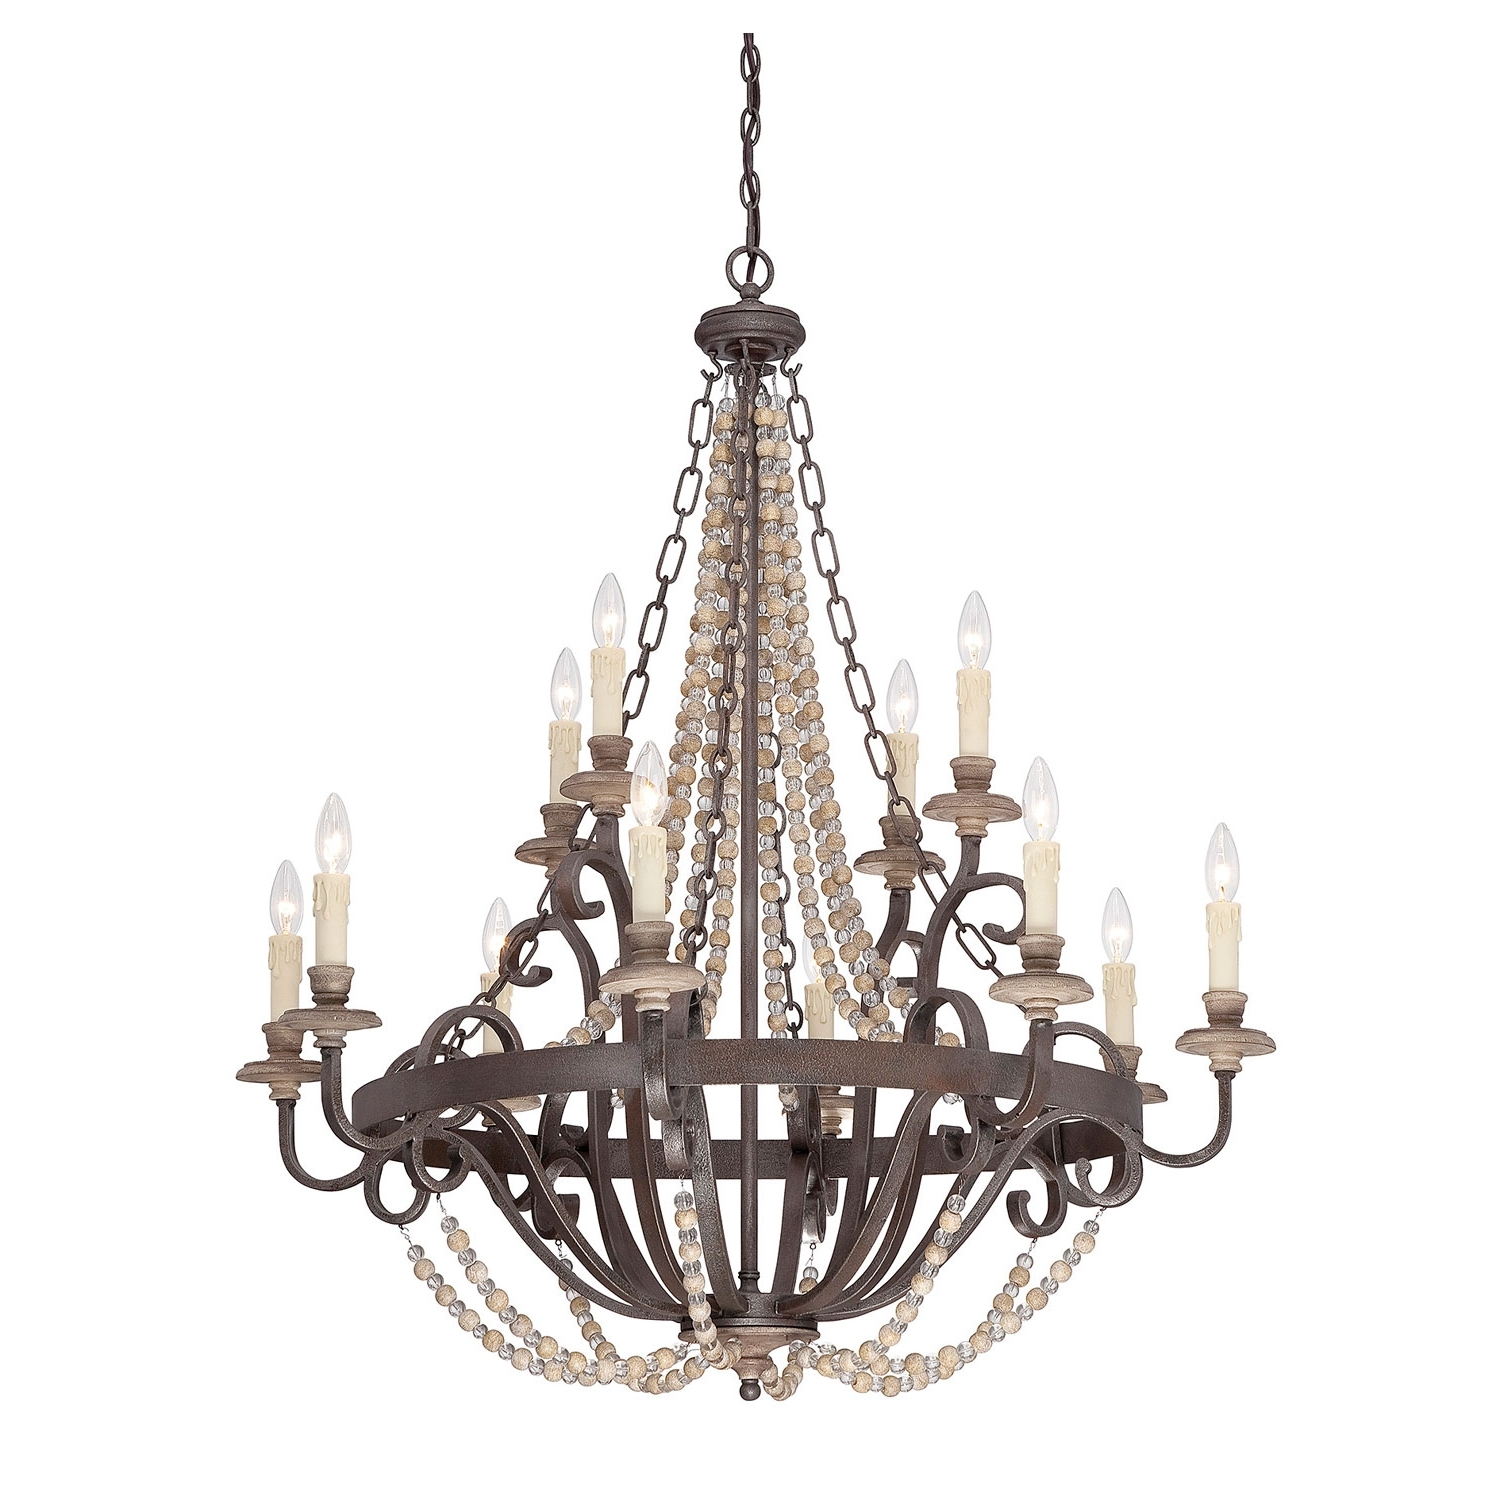 Savoy House Mallory Bronze 12 Light Chandelier On Sale Throughout Most Recent Candle Light Chandelier (View 6 of 20)